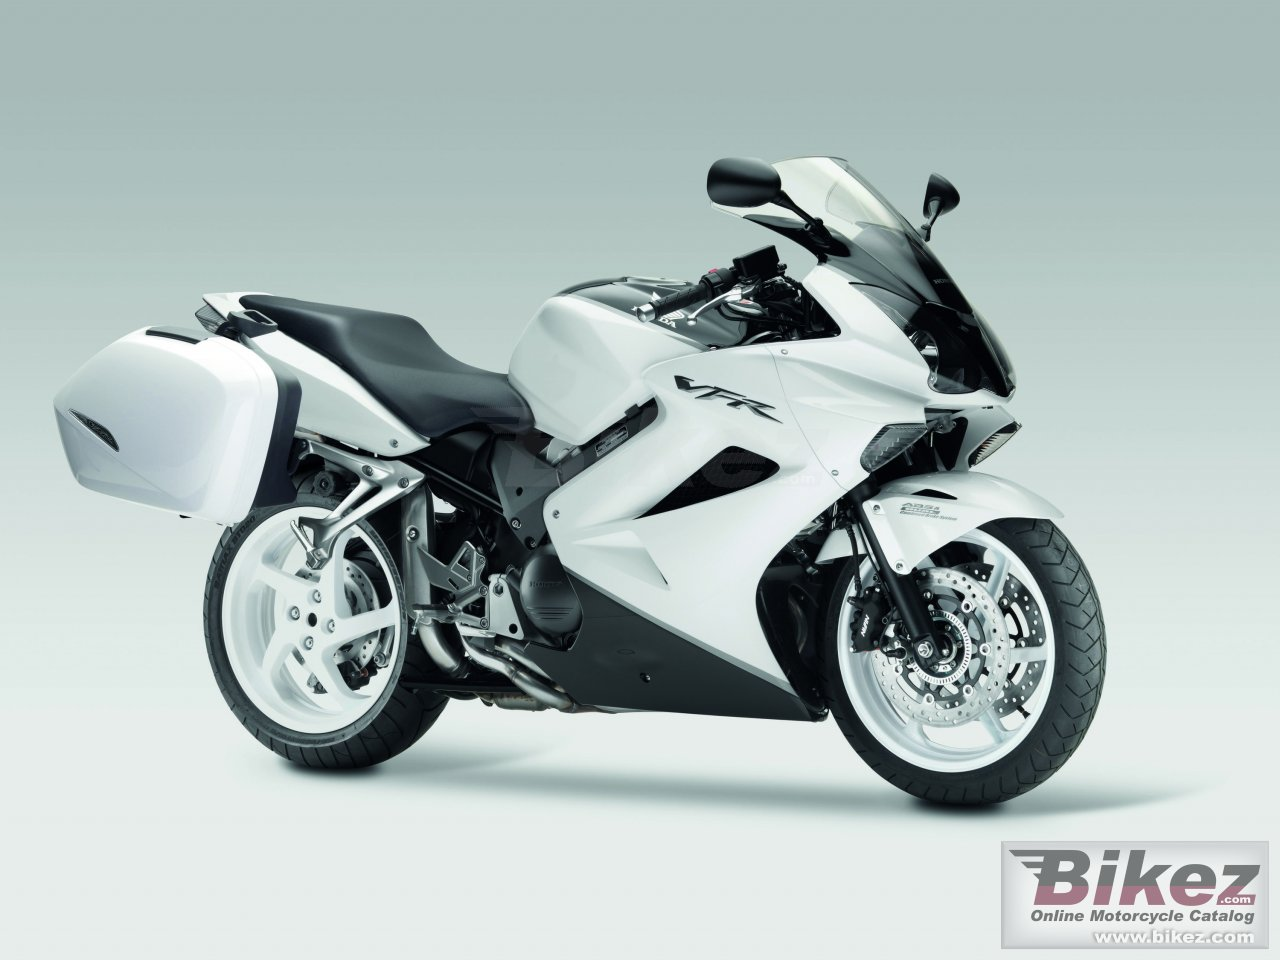 Big Honda vfr 800 picture and wallpaper from Bikez.com